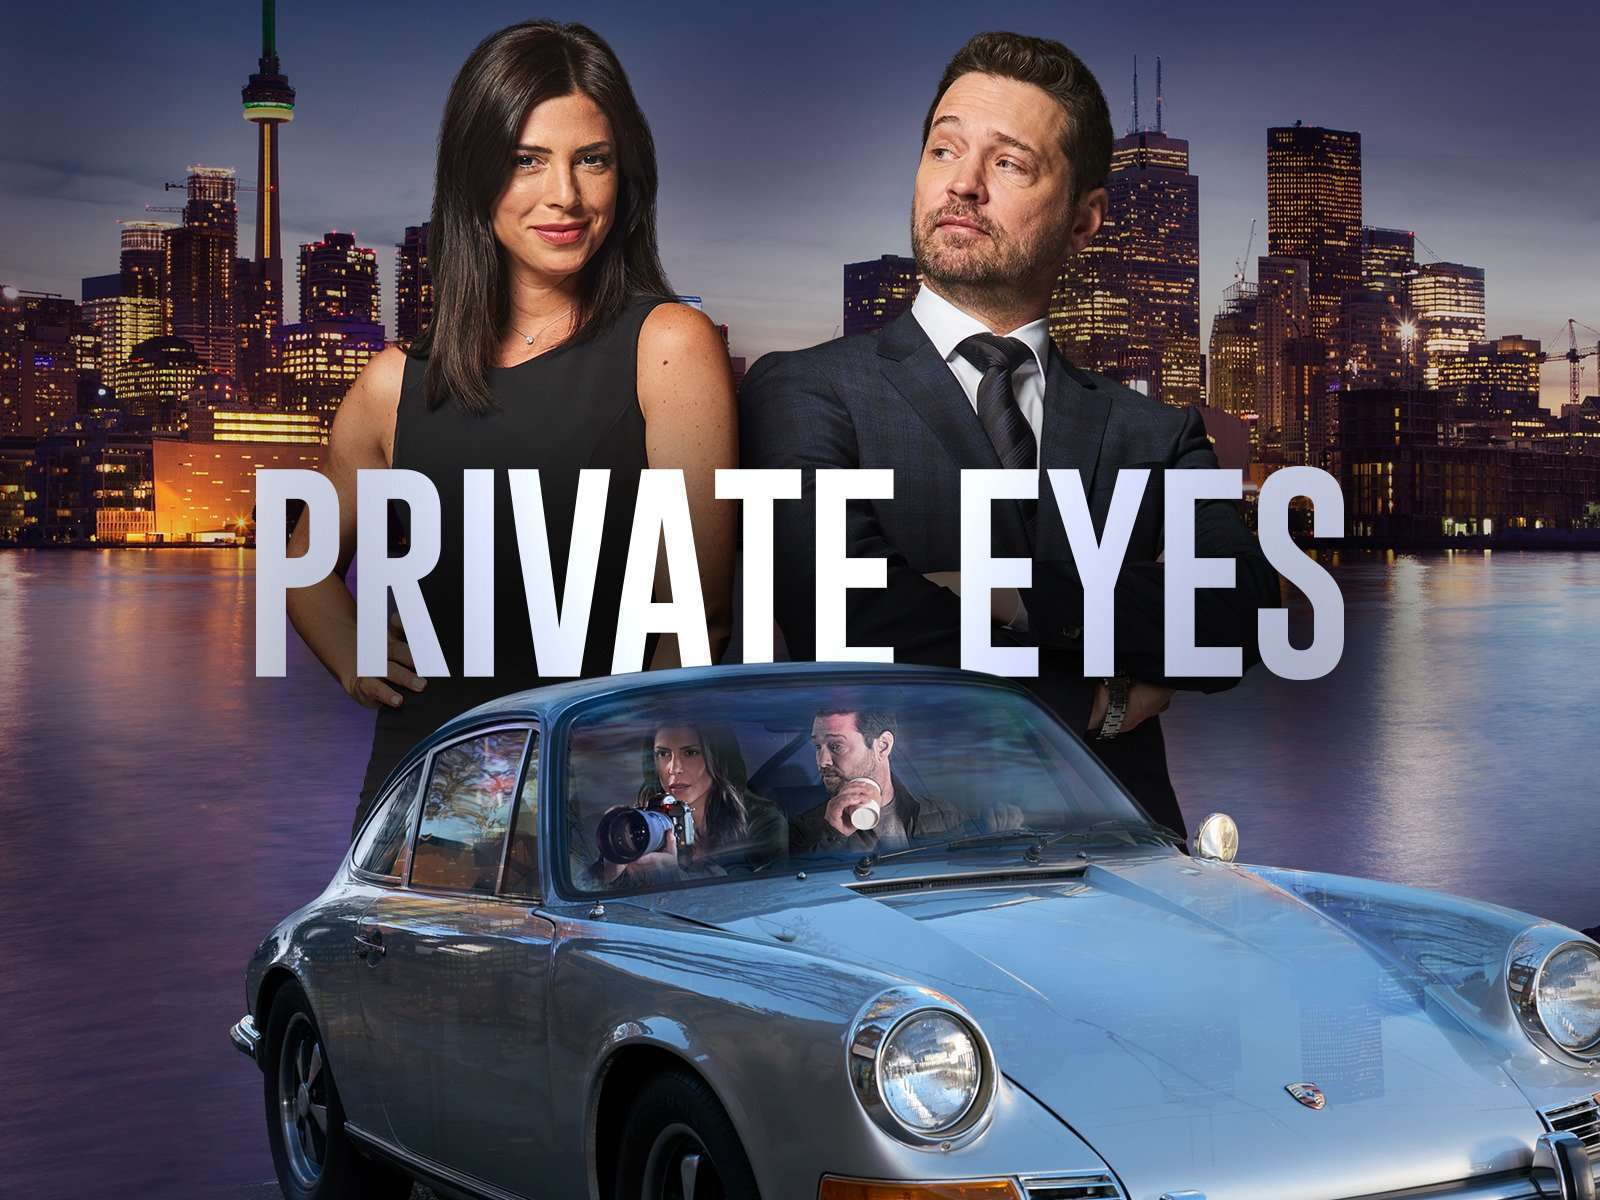 private eyes season 4 release date story cast and more updates 5ffe35cbf0968 Private Eyes Season 4: Release Date, Story, Cast and More Updates